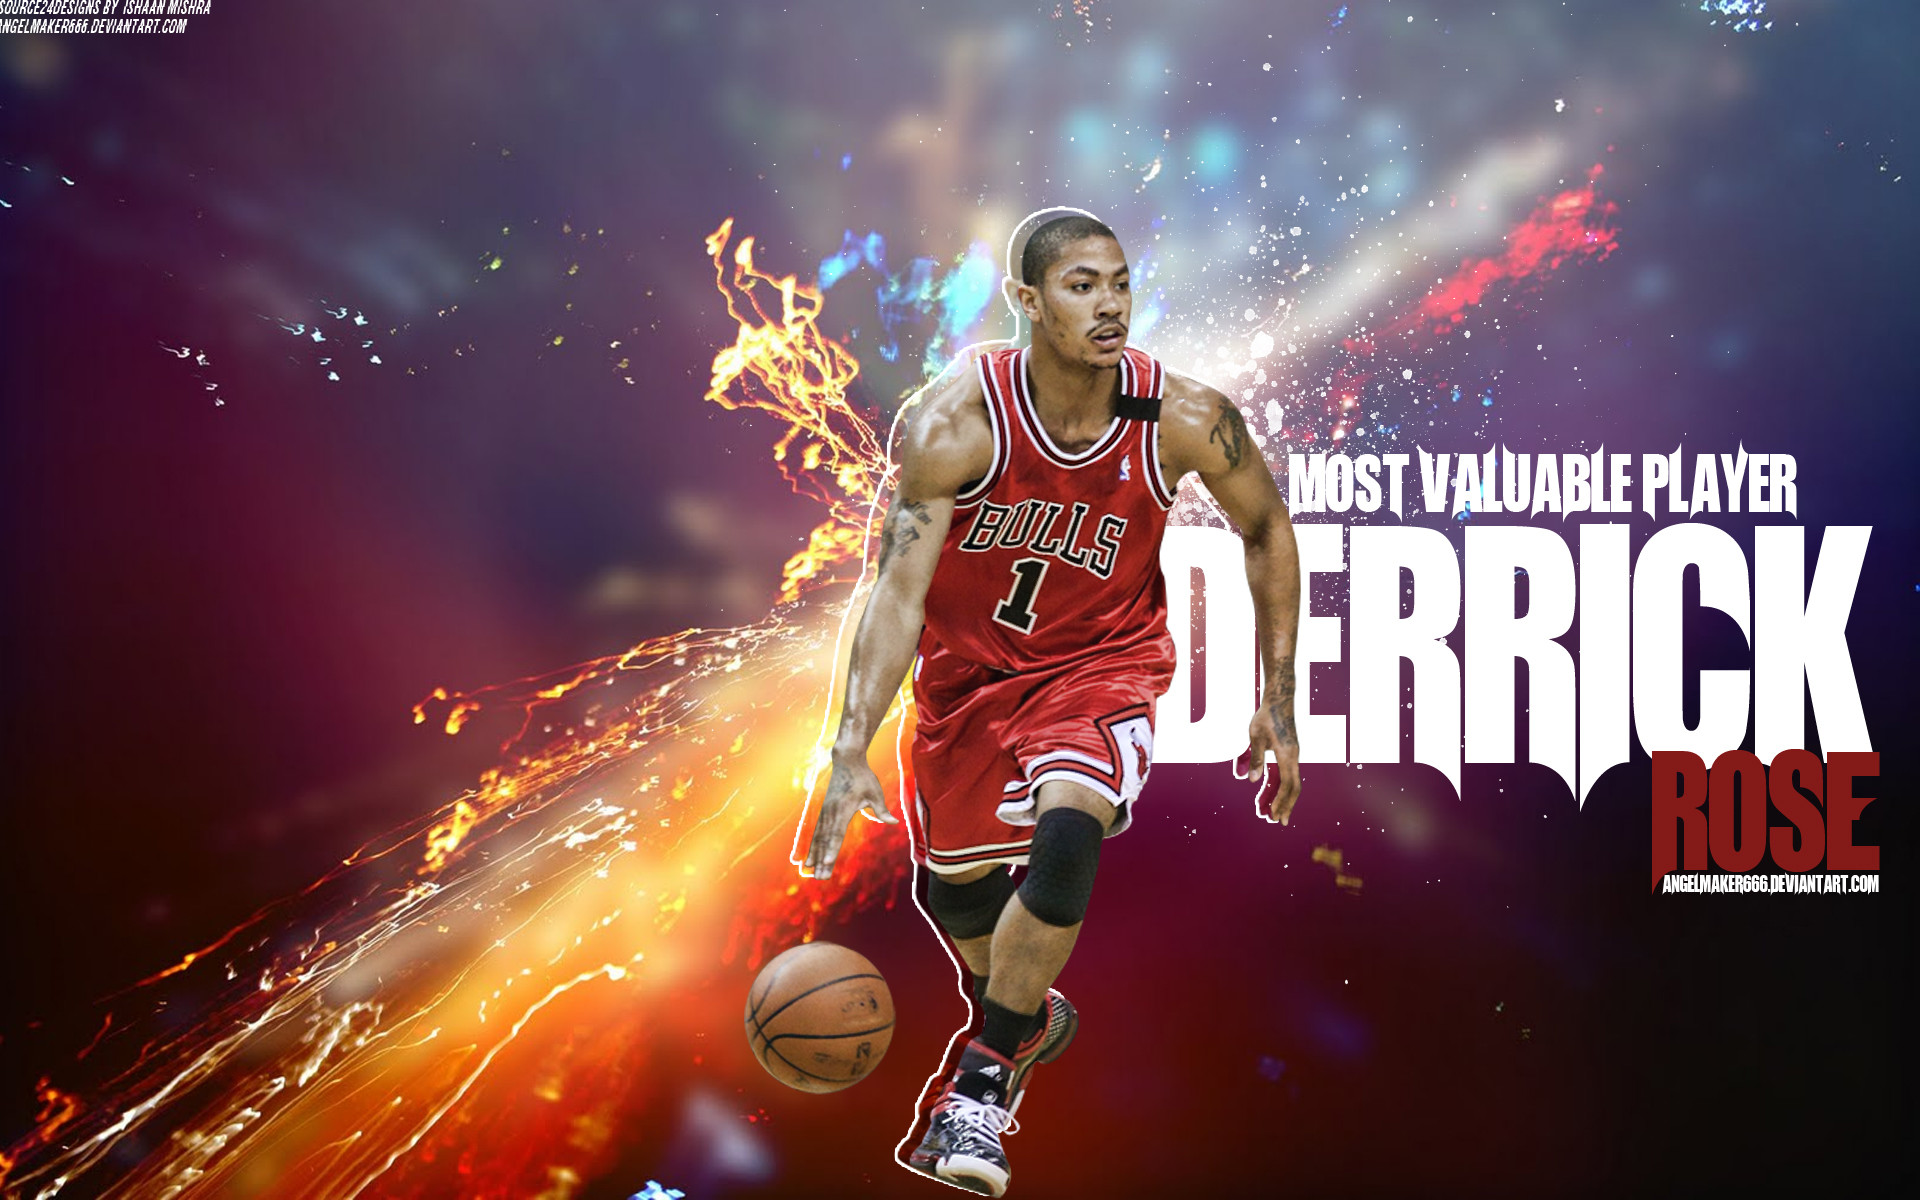 e8b6ddda79e9 1920x1200 Derrick Rose MVP Wallpaper by IshaanMishra Derrick Rose MVP  Wallpaper by IshaanMishra